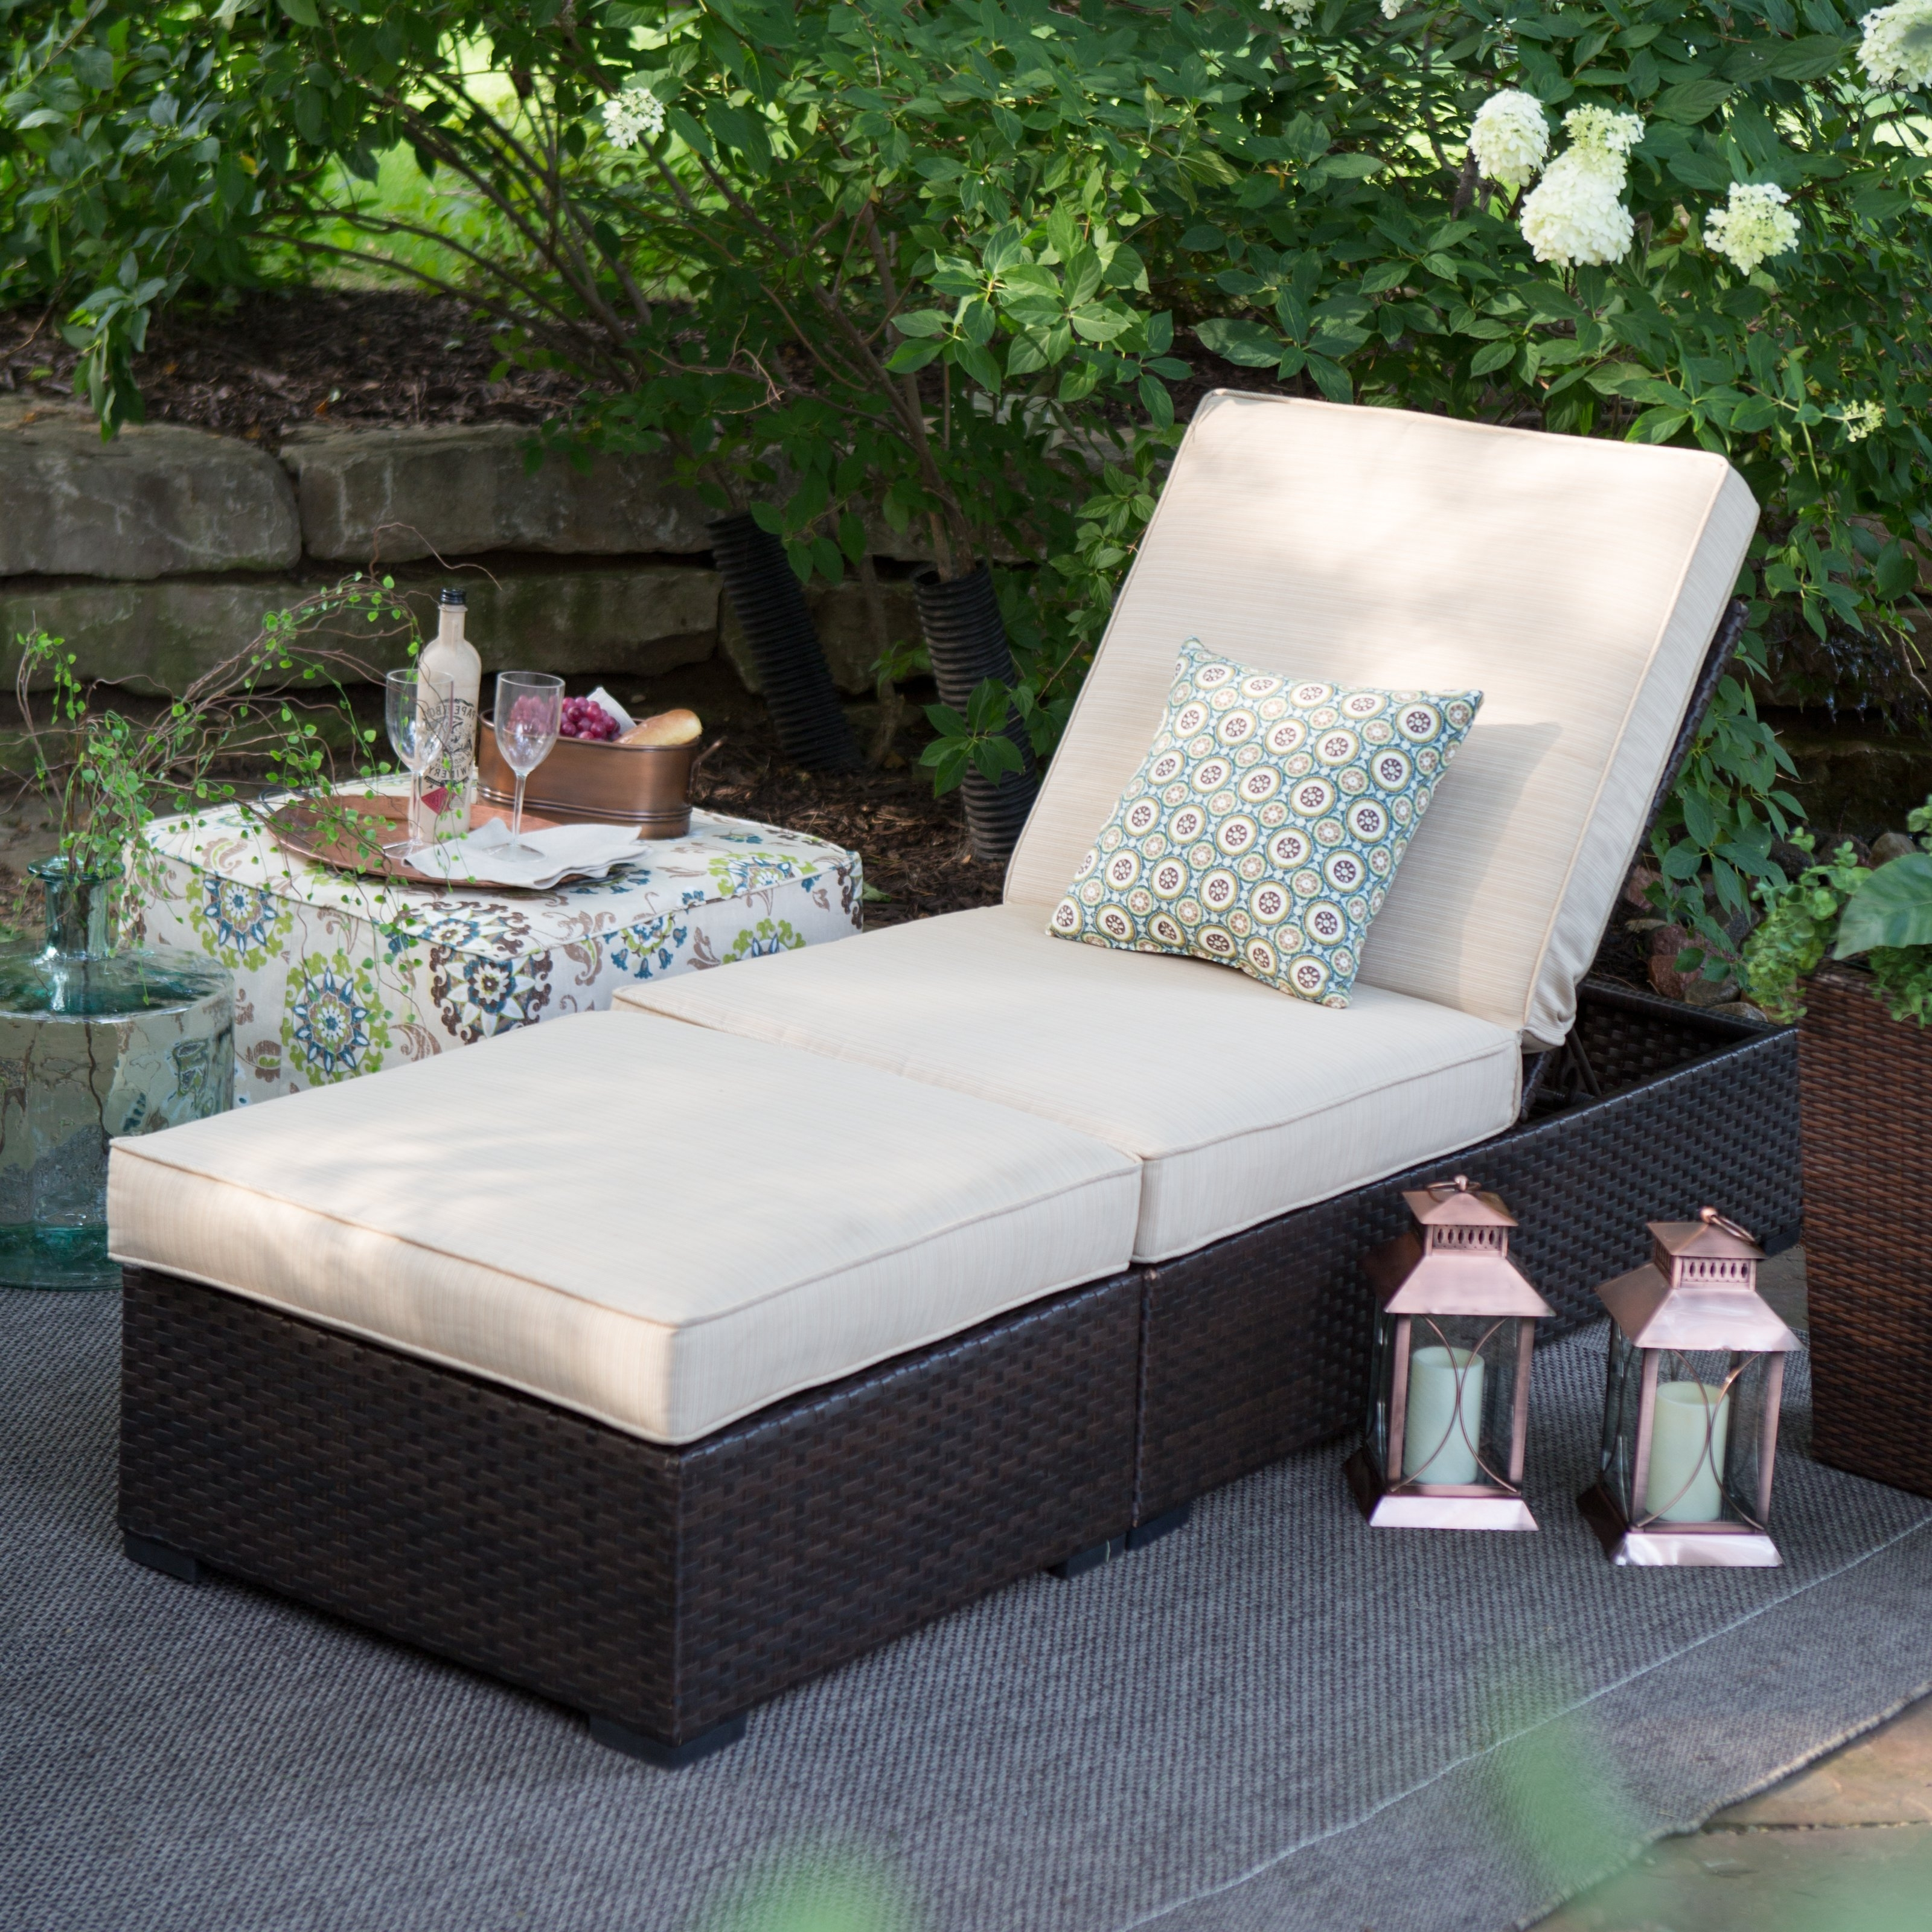 Newest Wicker Chaise Lounges Intended For Belham Living Marcella Wide Wicker Chaise Lounge With Ottoman (View 8 of 15)